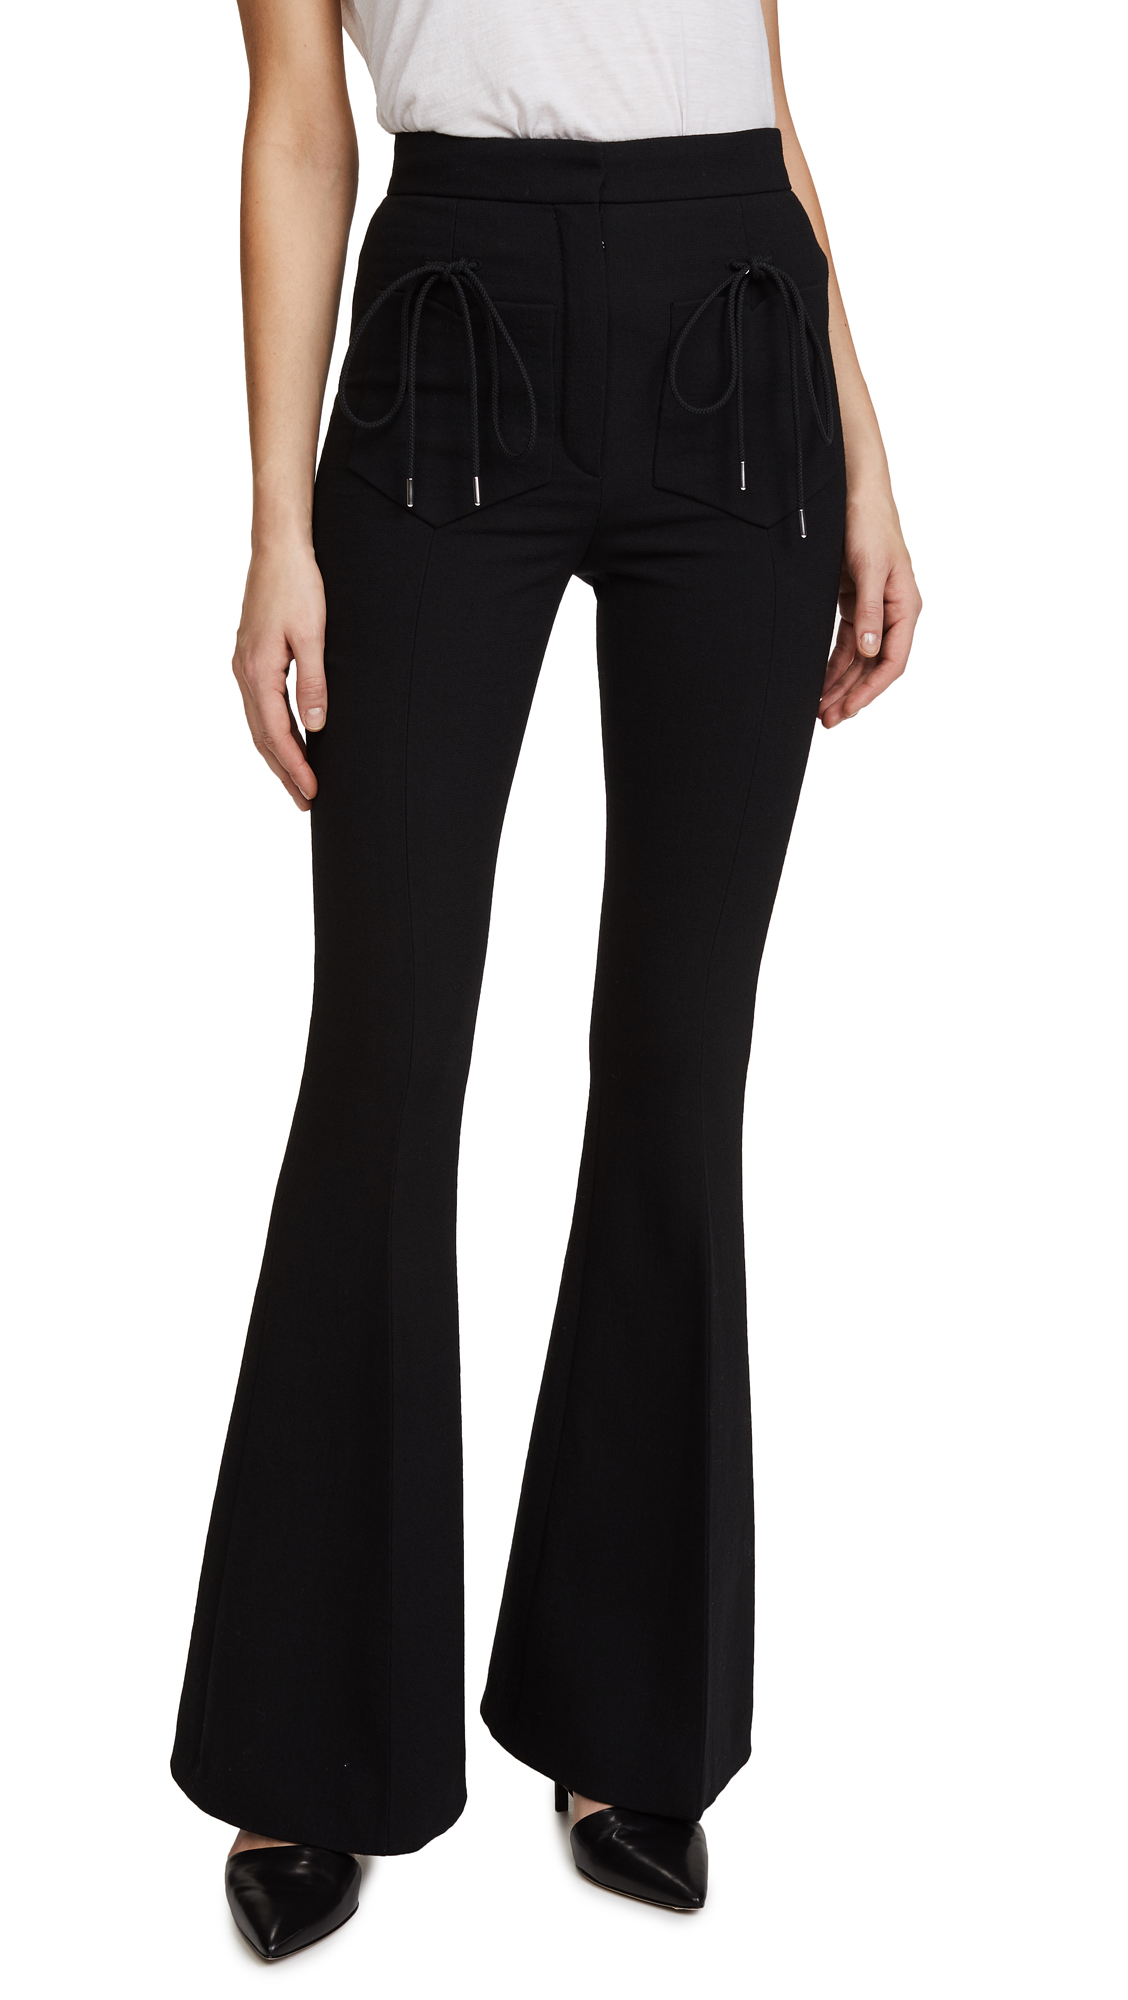 Nina Ricci Flared Wool Crepe Trousers - Black